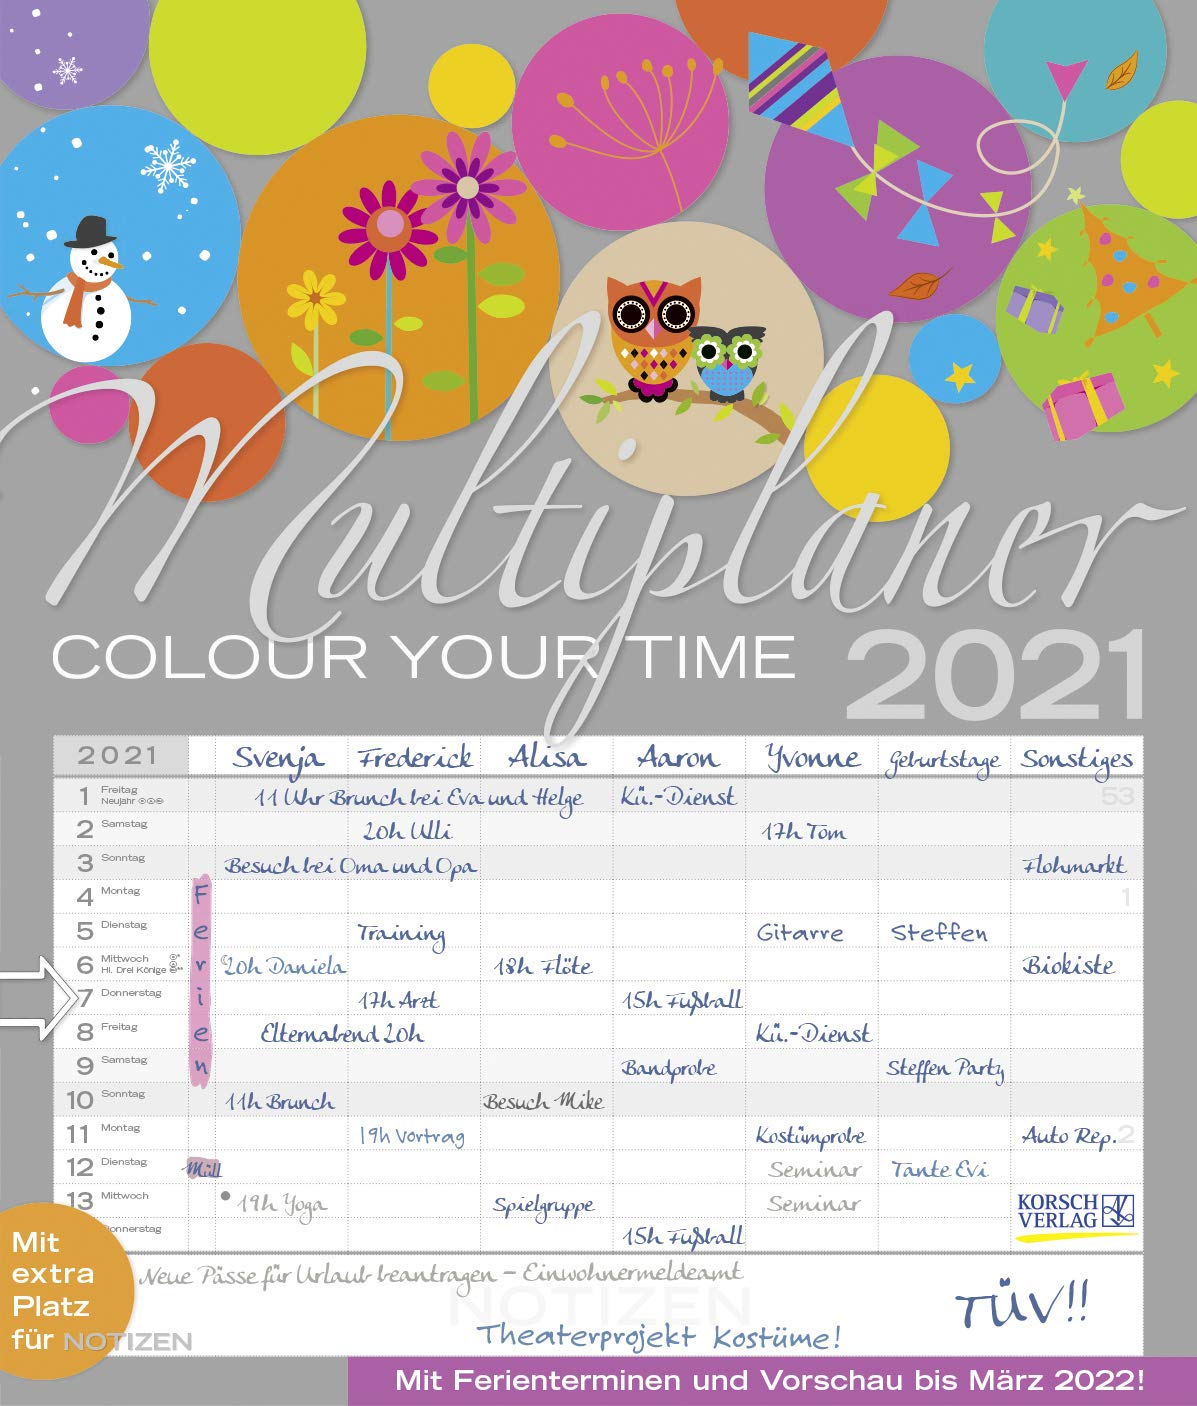 Download Multiplaner - Colour Your Time 2021: Familienplaner, 7 Breite Spalten 